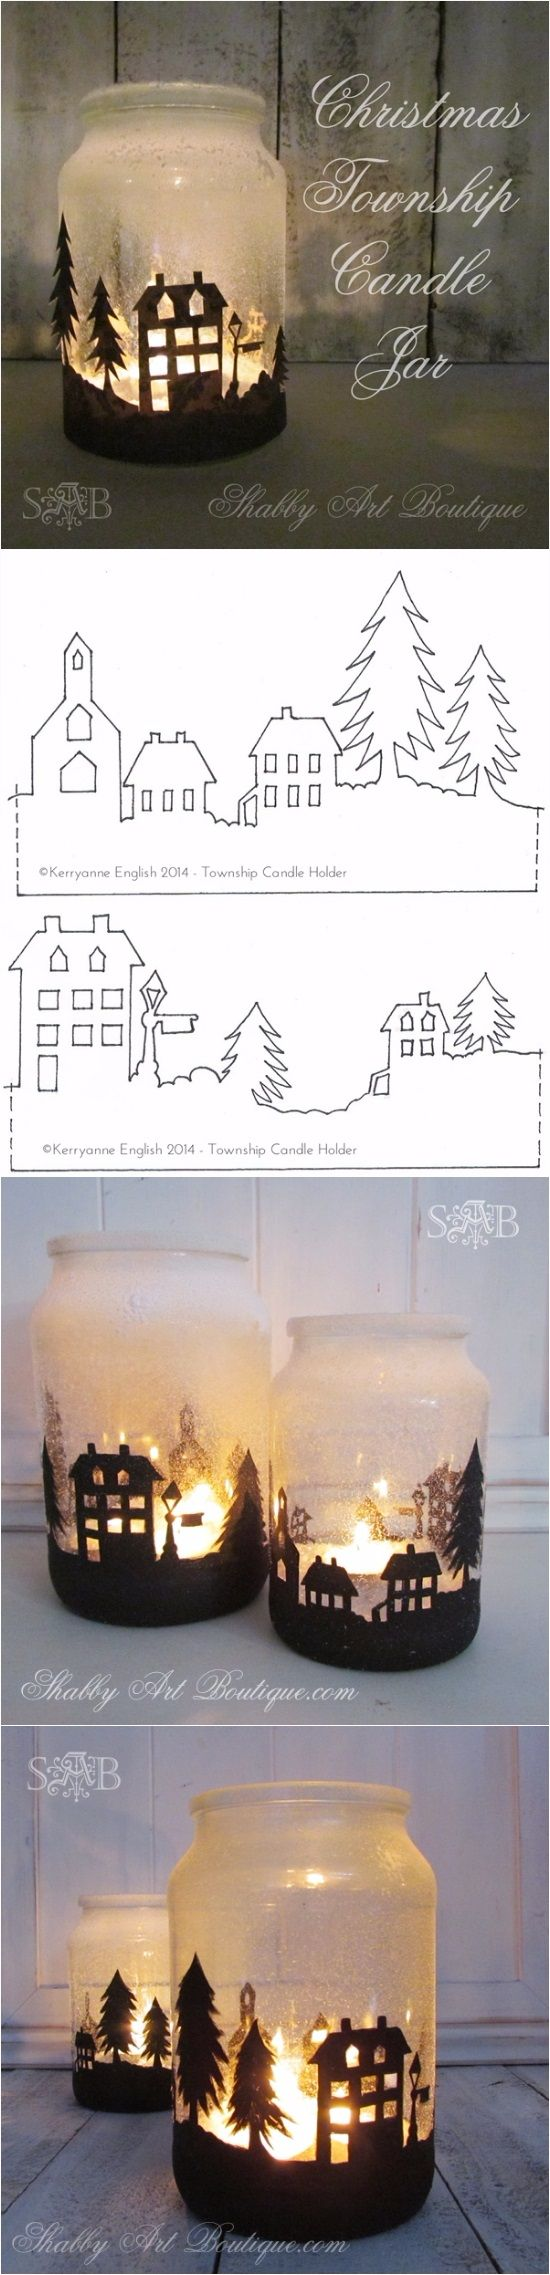 "Materials Glass jar, DecoArt Americana acrylic paint – Lamp Black, Small round paint brushes size 2 and 4, 1/4"" flat brush, Can of Santa Snow, Wire for handle (optional), Isopropyl Alcohol Spray and clean cloth.   Instructions for making painted township 1. Clean jar with soapy water and remove any labels. 2. Wipe outside of […]"